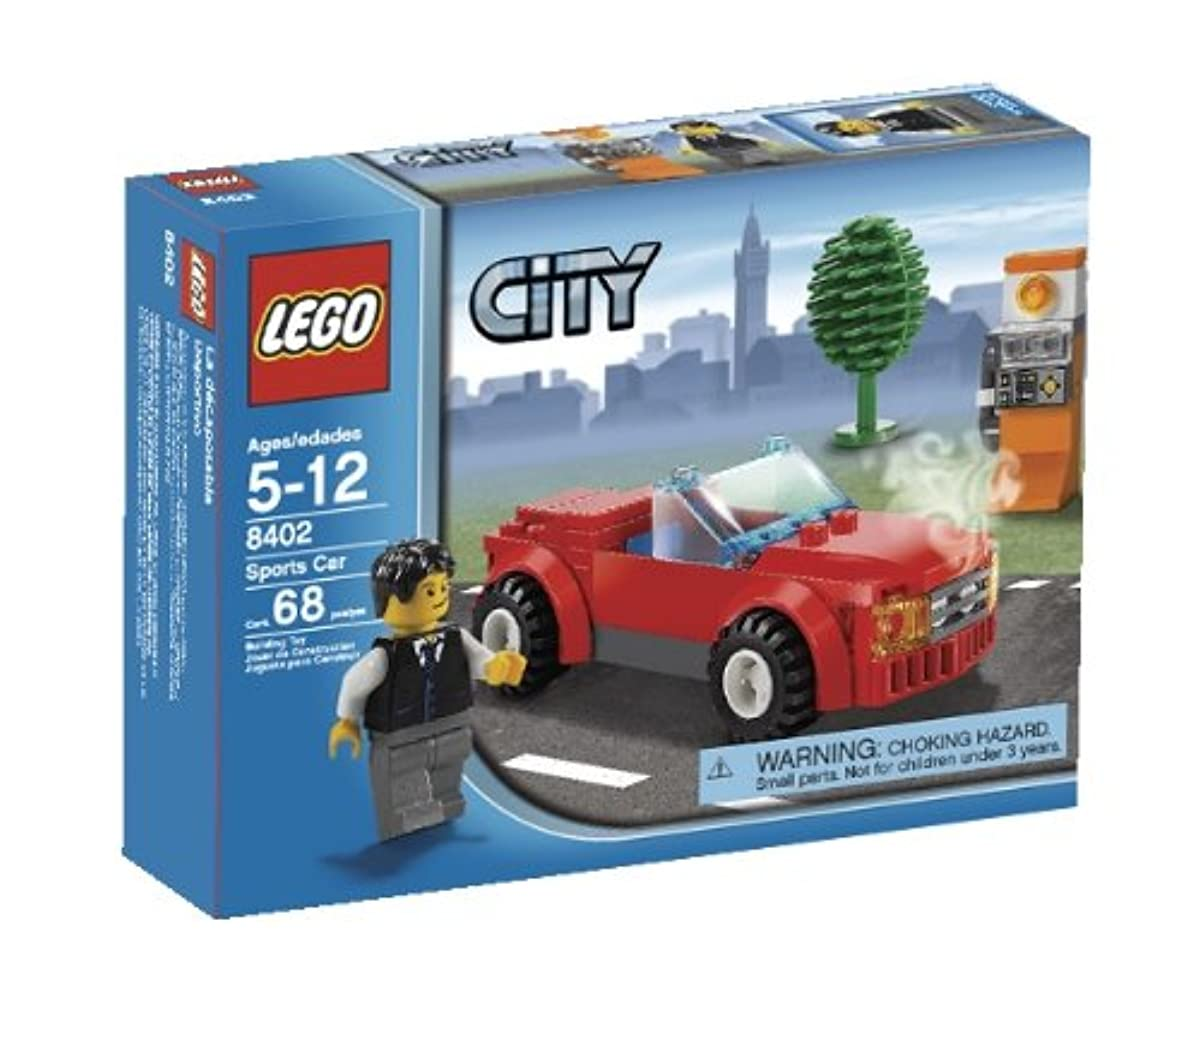 [레고 시티] LEGO City Sports Car (8402)